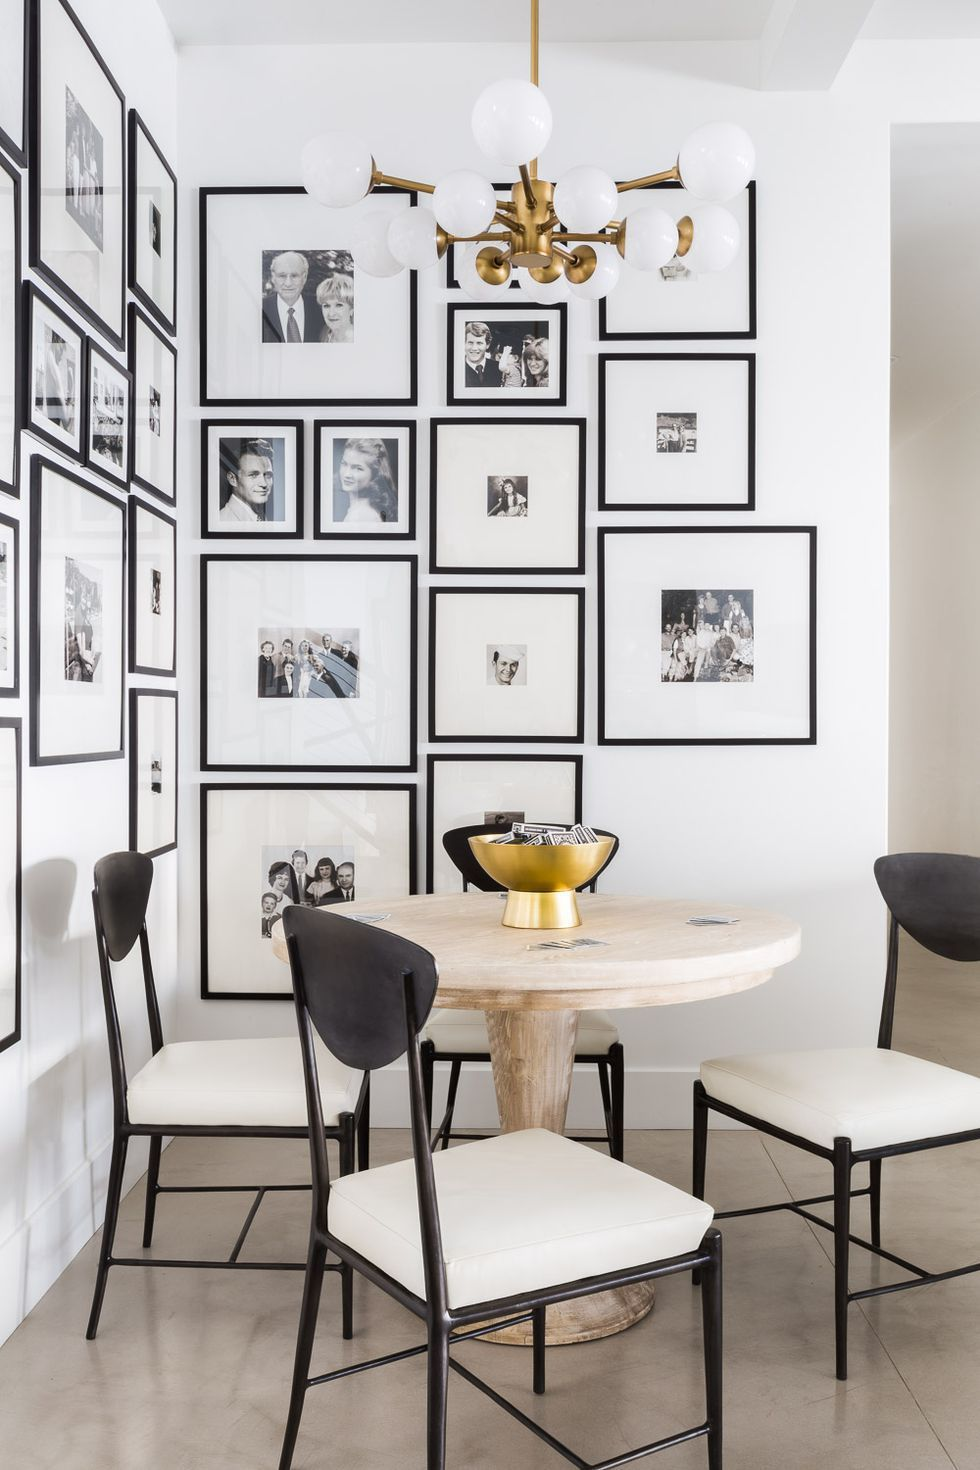 15 Breakfast Nooks That Are Full of Charm images